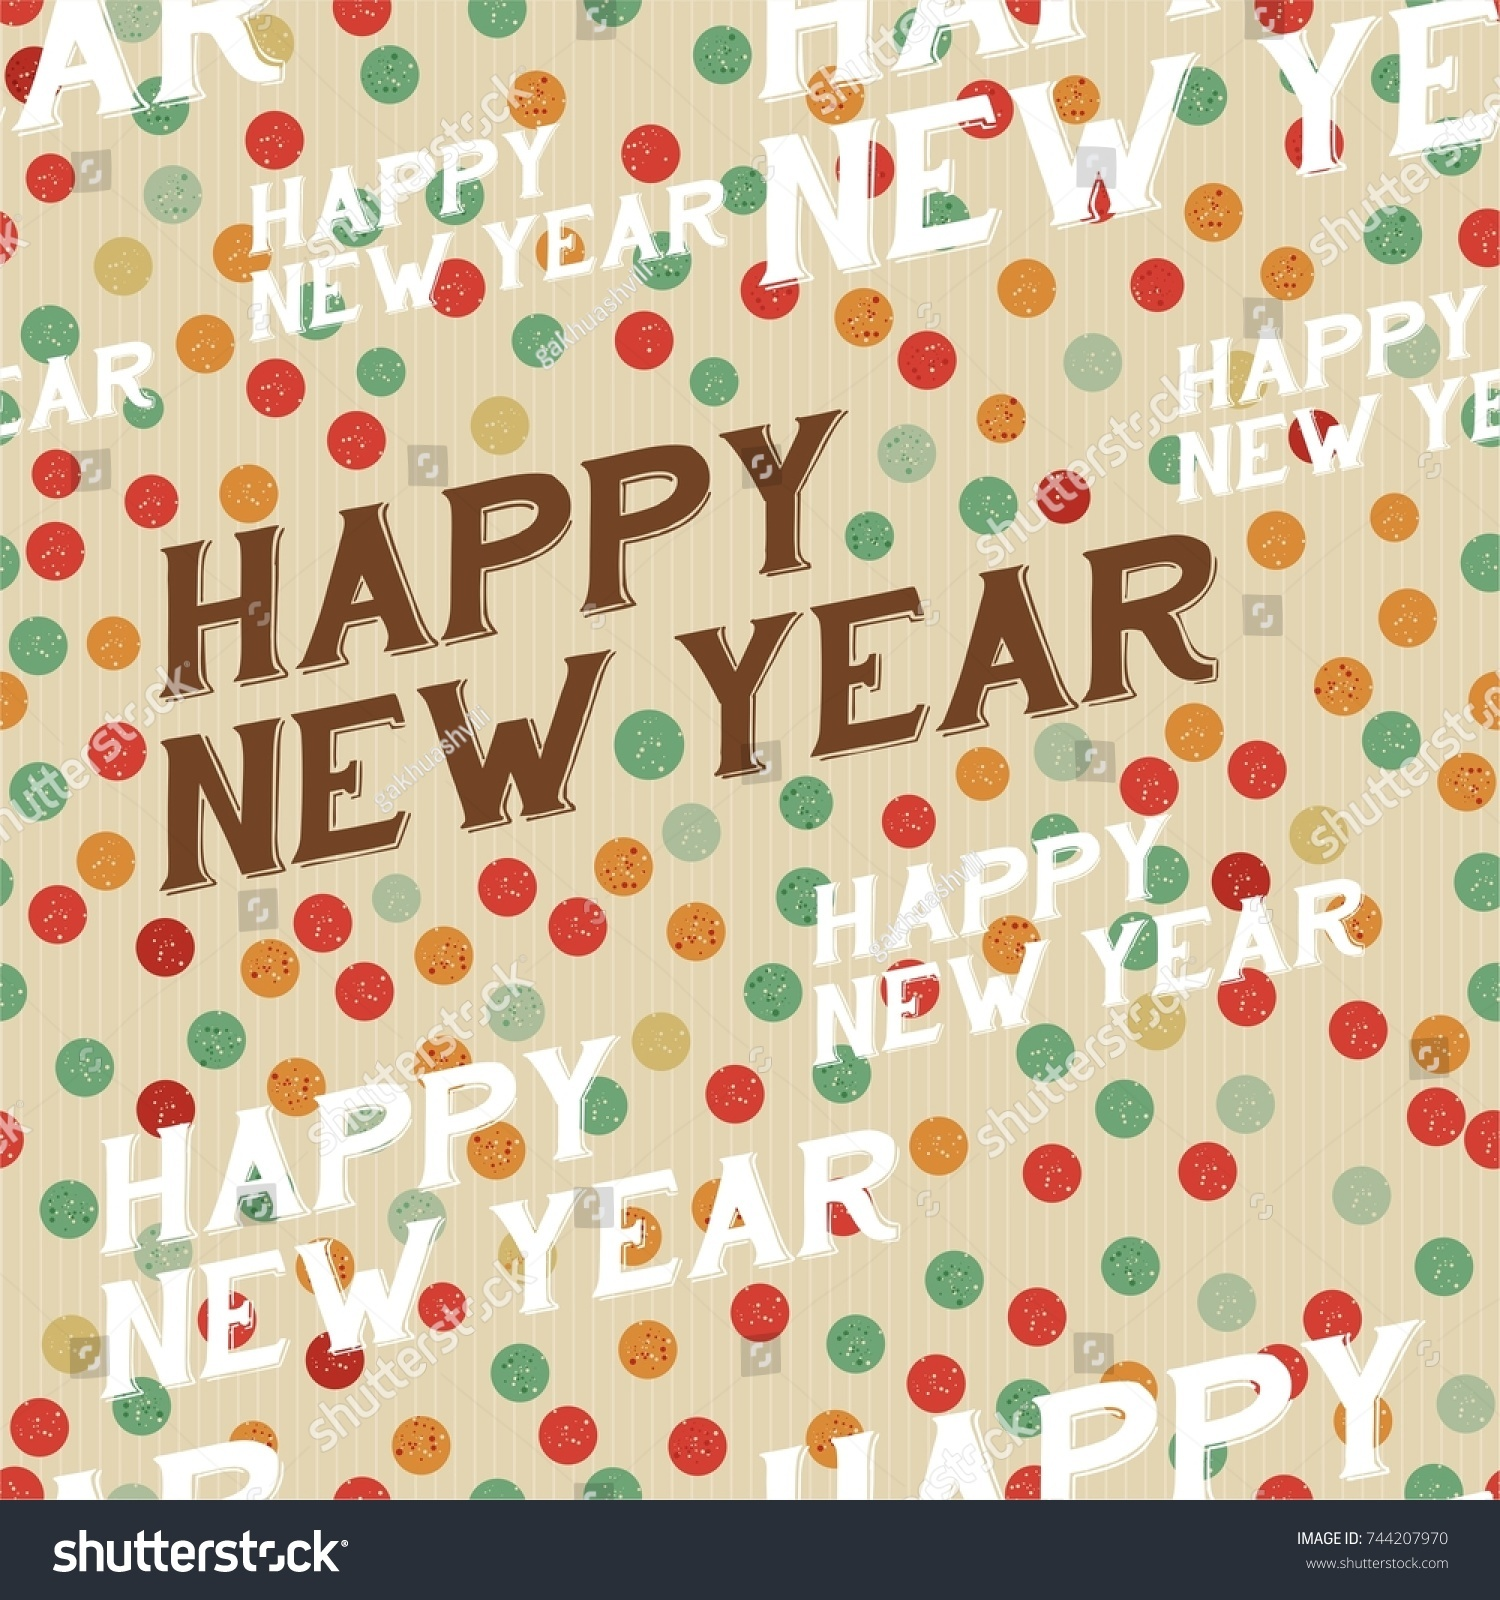 Wonderful vintage vector new year pattern stock vector 744207970 wonderful vintage vector new year pattern with text happy new year ocher craft paper background jeuxipadfo Image collections